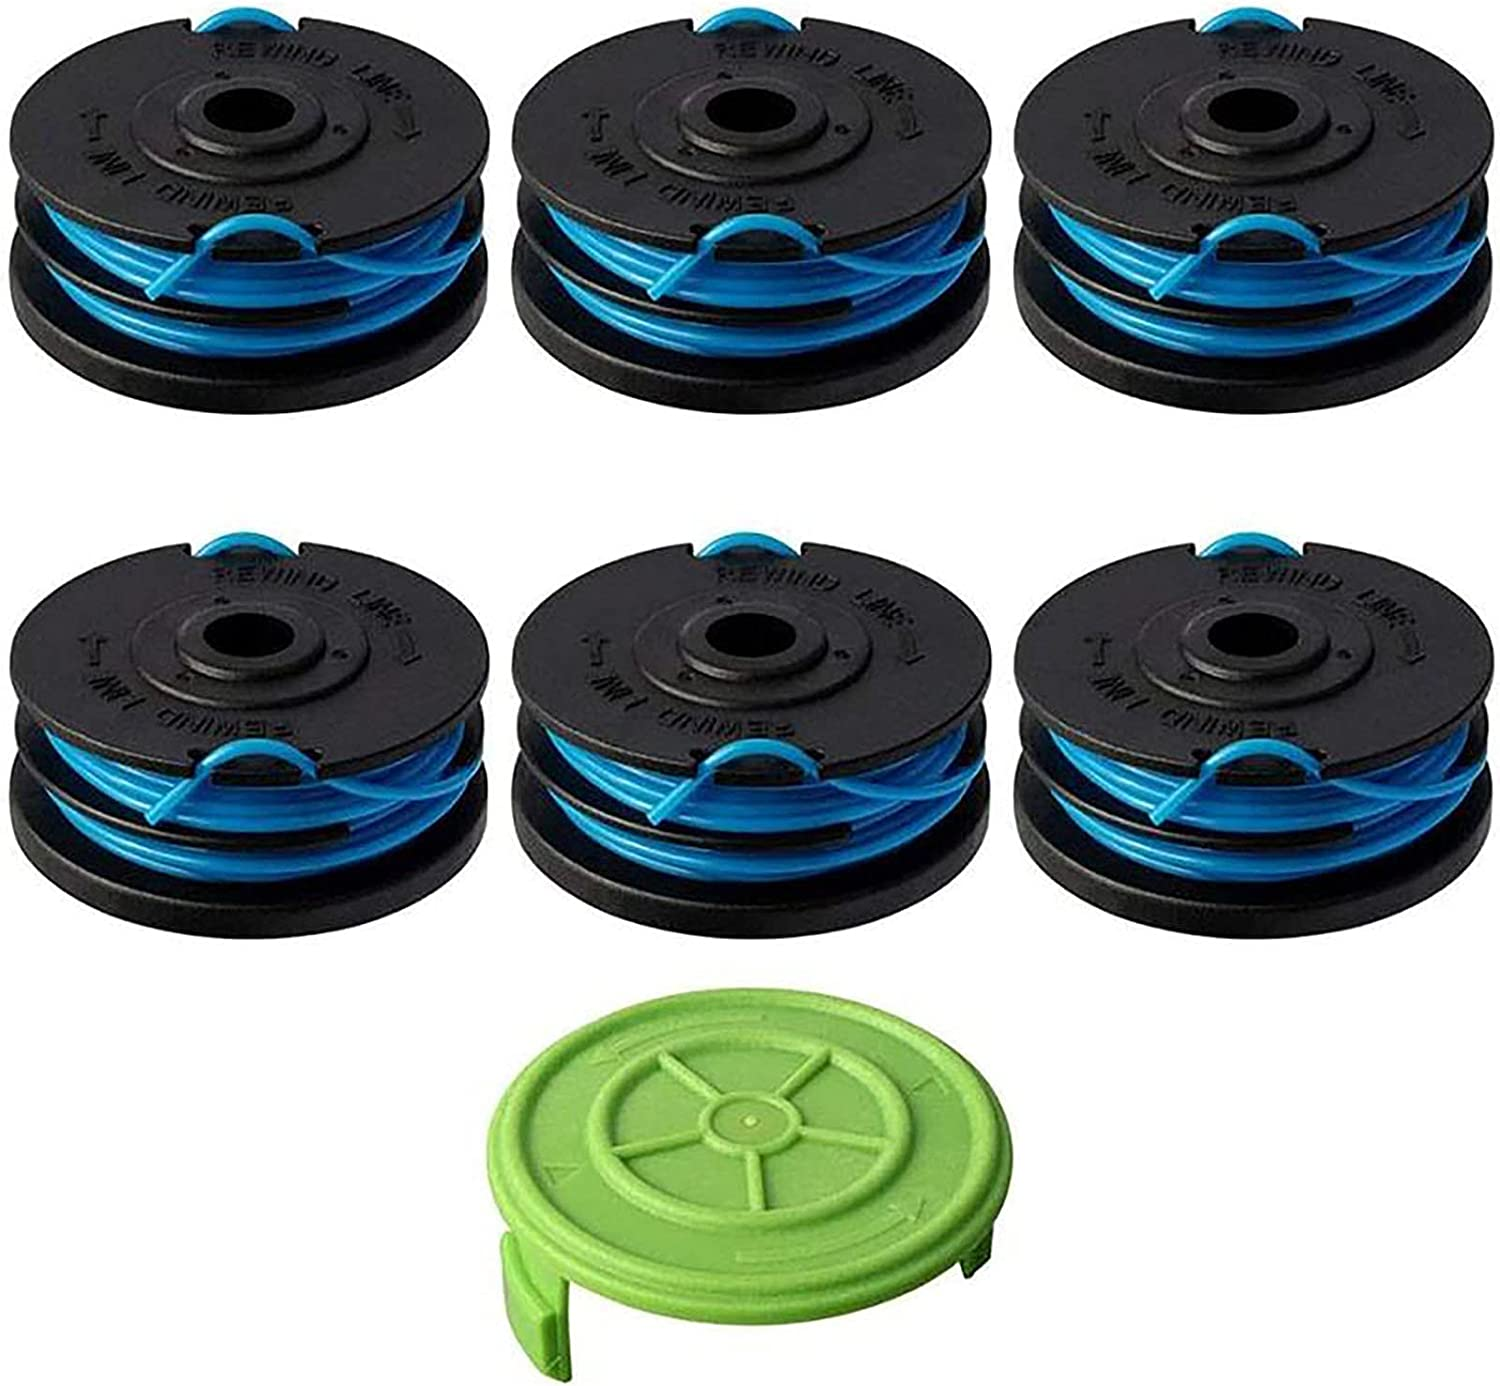 """Details about  /6 Pc Replacement Spool for Greenworks 2900719,2101602 - 20ft 0.065/"""" A"""